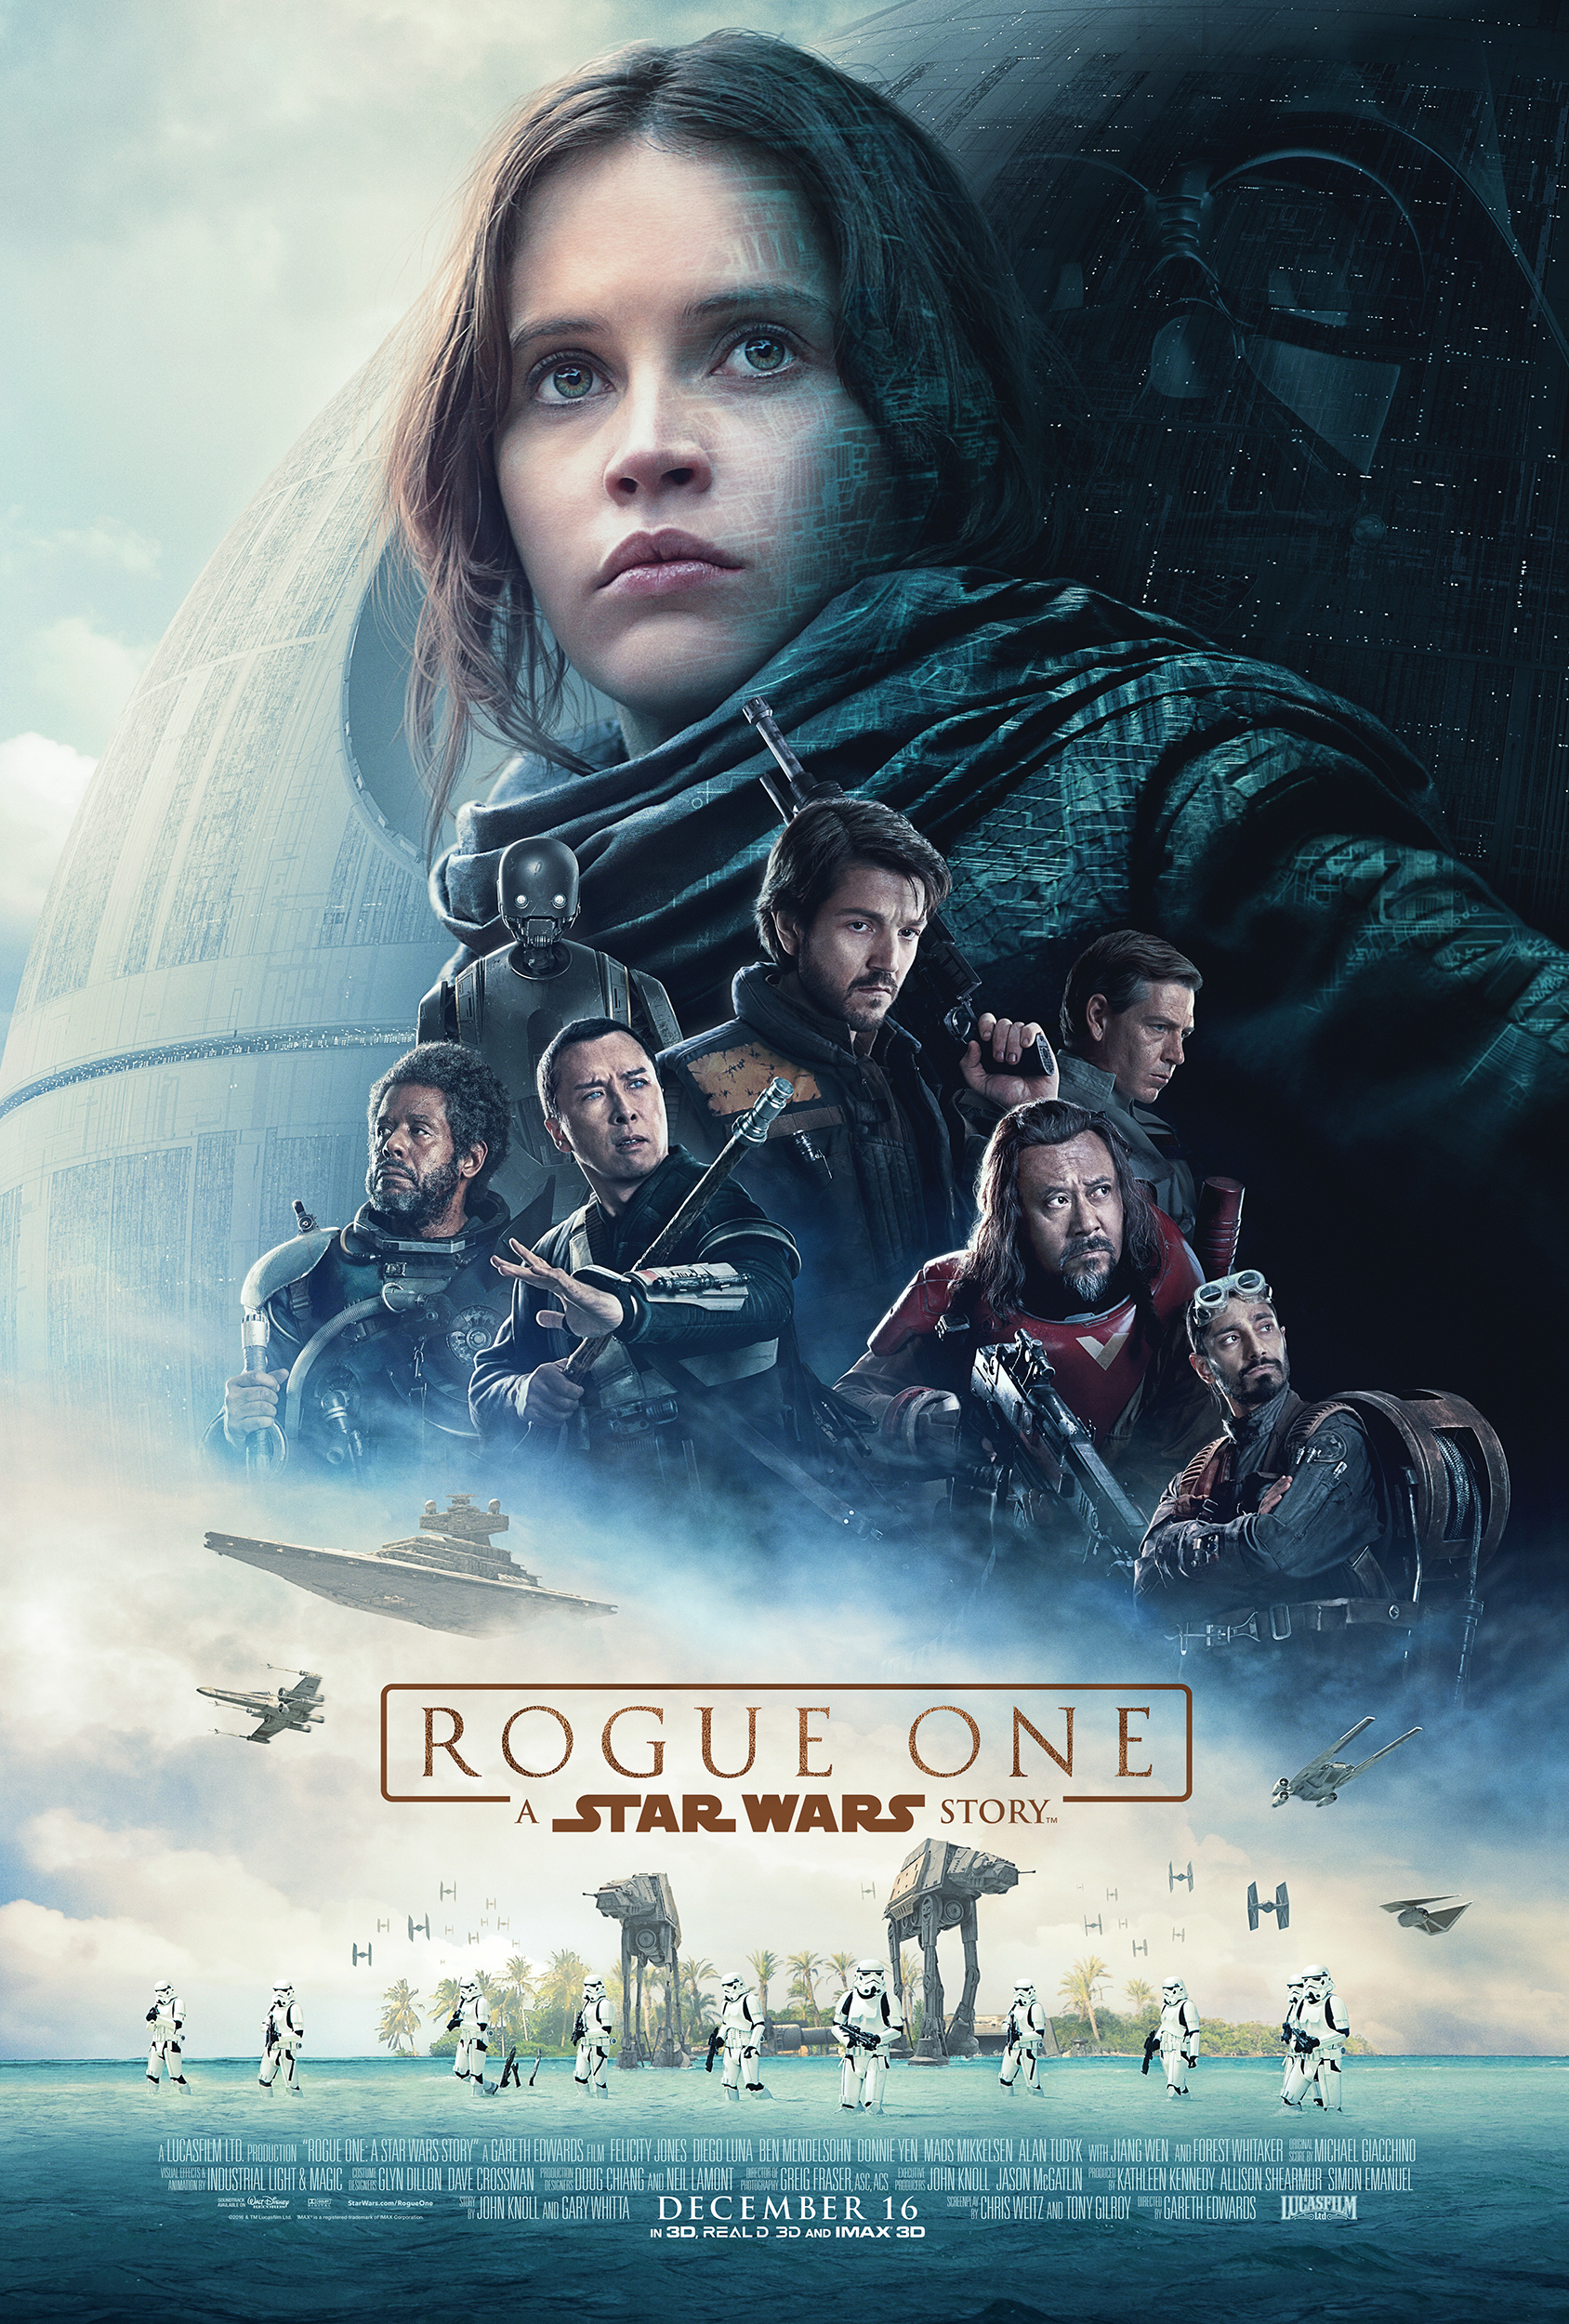 Rogue One: A Star Wars Story film review